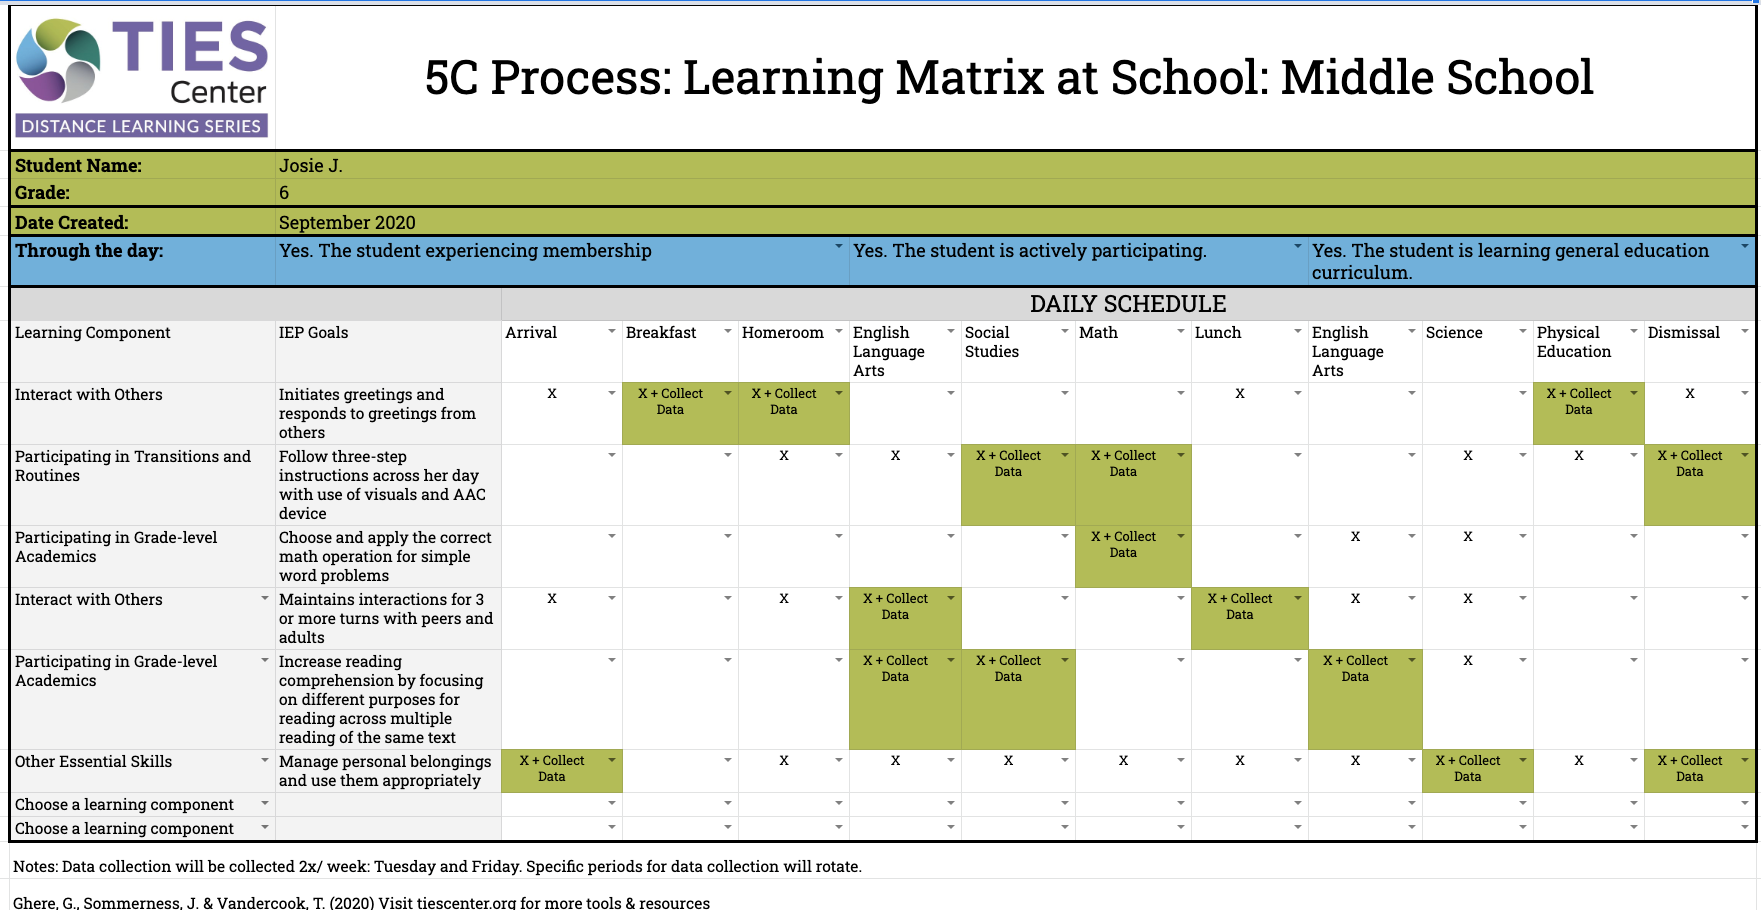 An example learning matrix that has been filled in for Josie, a 6th grade student. The matrix allows users to fill in overarching learning competencies, corresponding IEP goals, the student's daily schedule, and which goals are to be tracked.